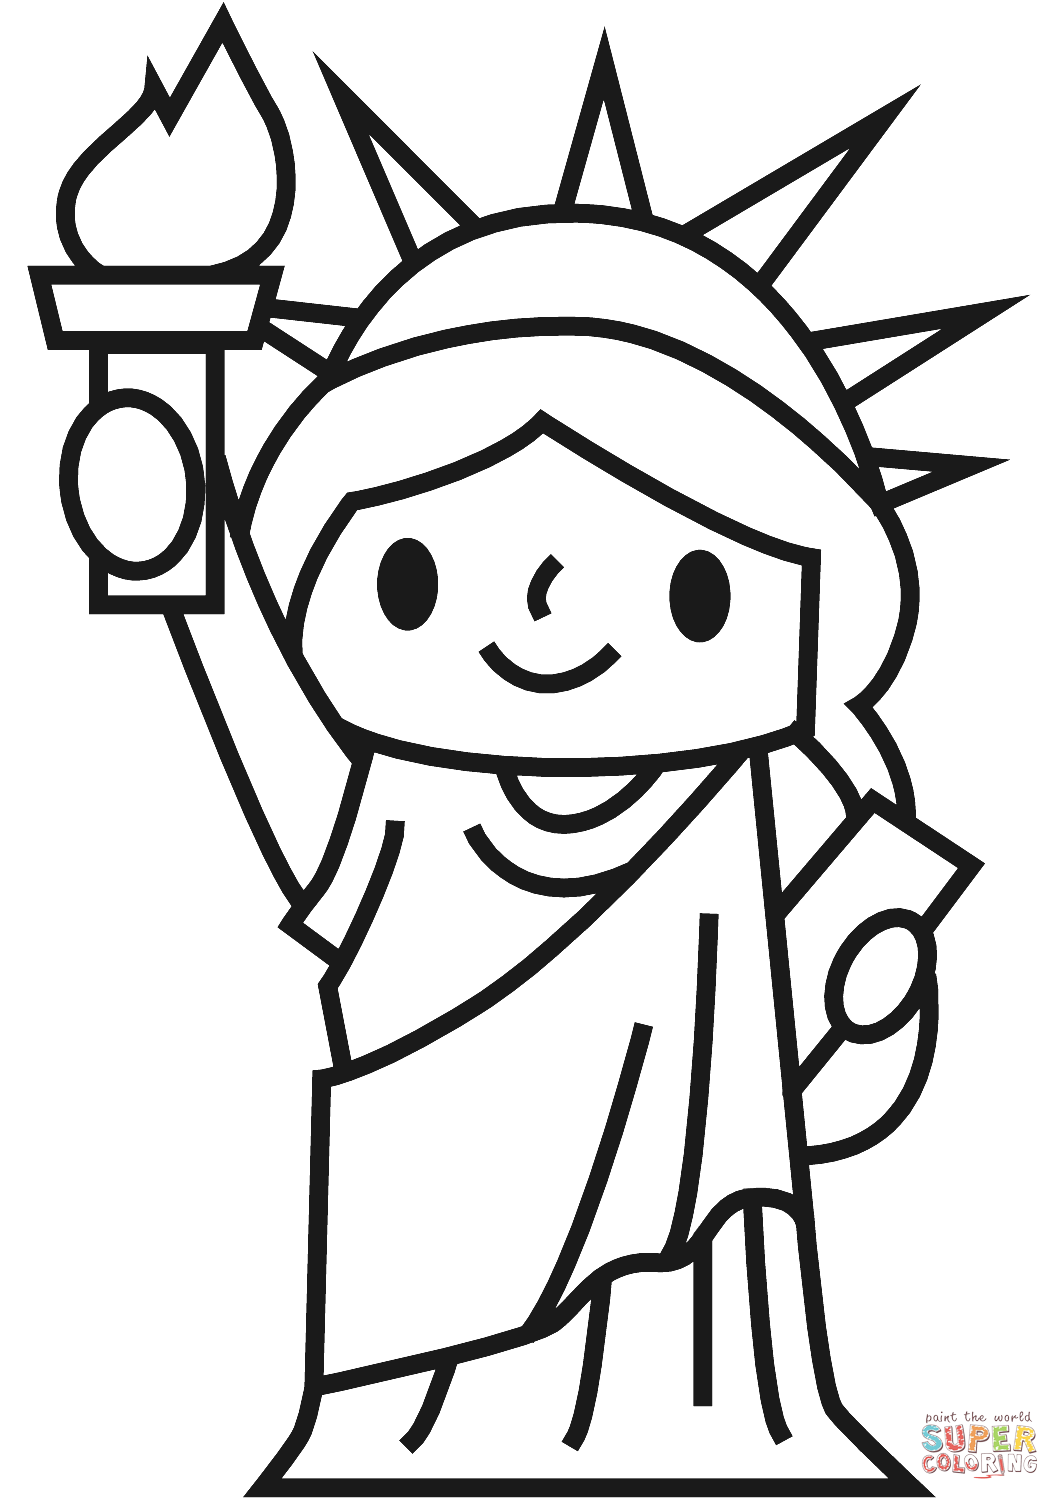 Dibujo de Estatua de la Libertad simple para colorear